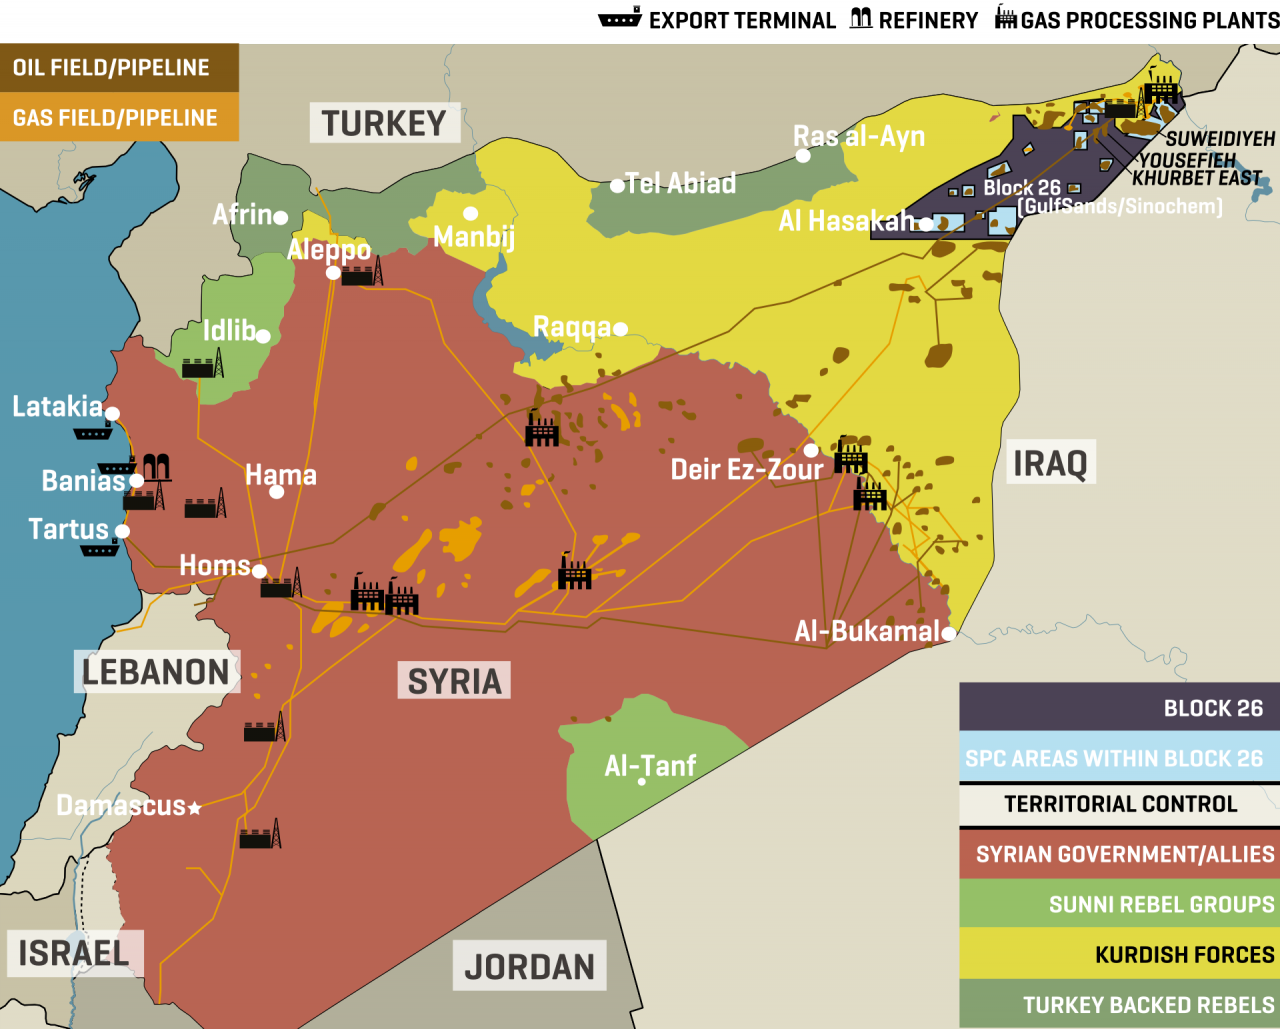 Syria's Oil & Gas Infrastructure